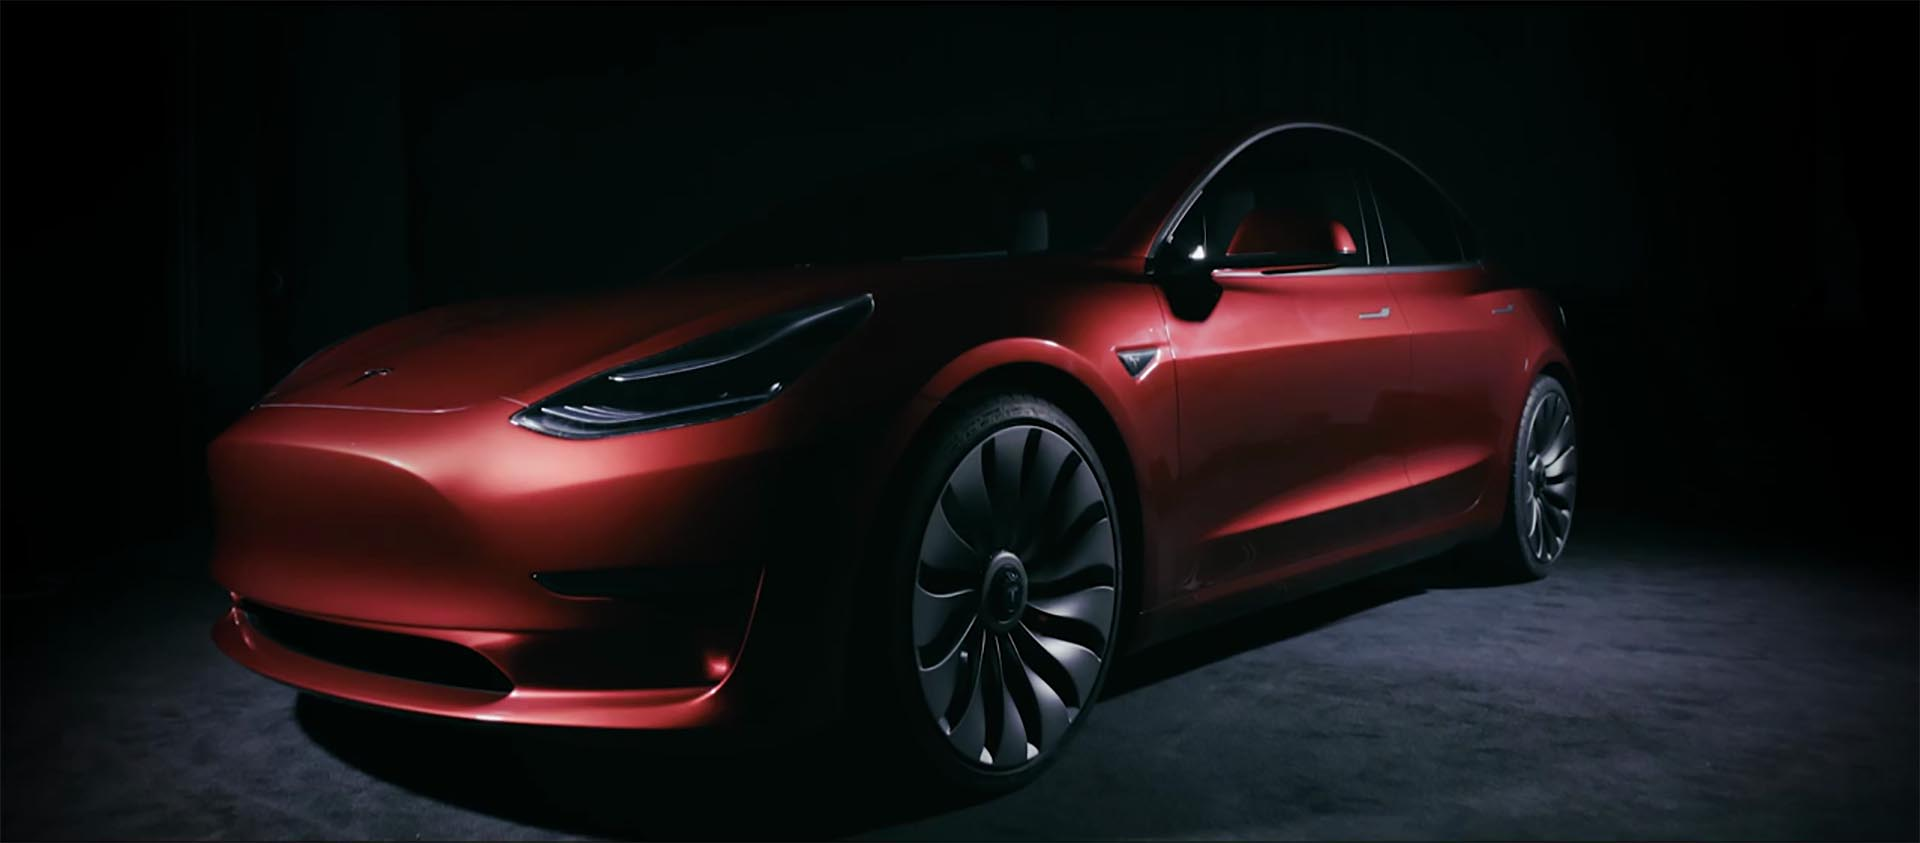 tout savoir sur la tesla model 3 prix disponibilit s performances tech numerama. Black Bedroom Furniture Sets. Home Design Ideas